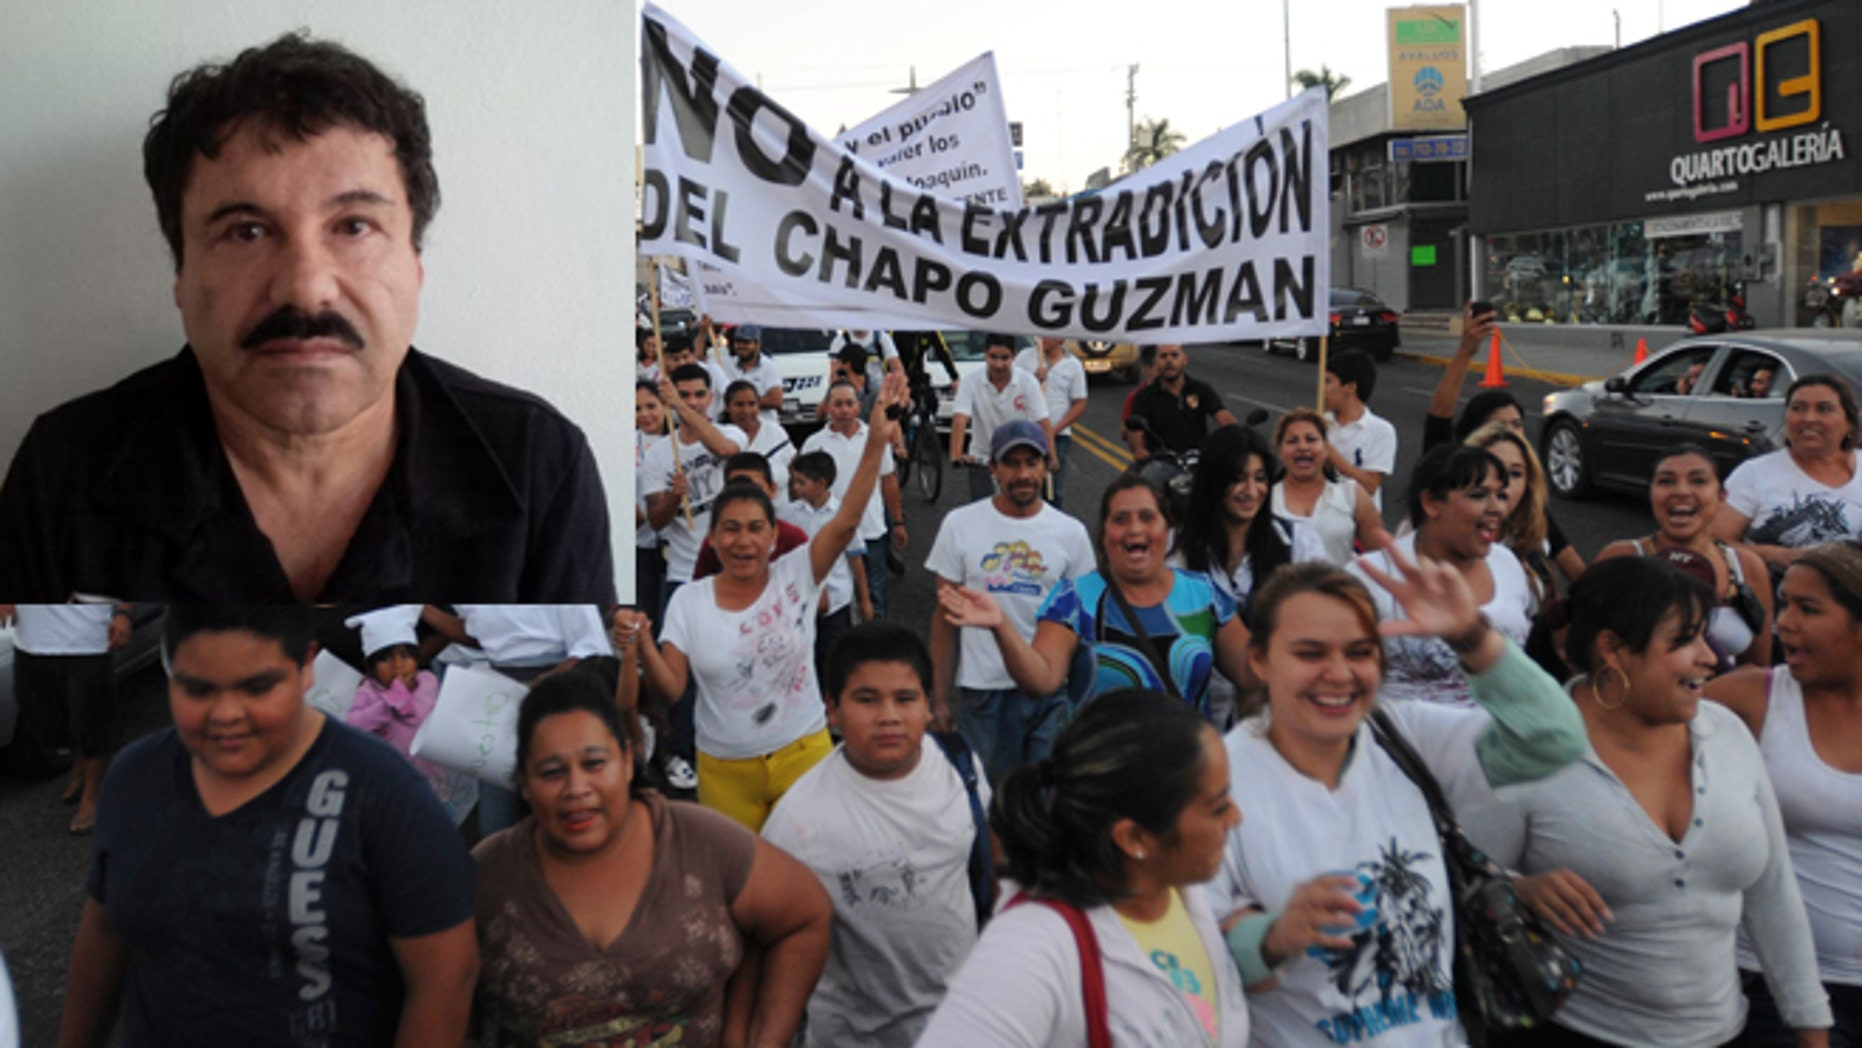 """People march in support of jailed drug boss Joaquin Guzman Loera, """"El Chapo"""" (pictured top left) in the city of Culiacan, Mexico, Wednesday, Feb. 26, 2014.  (AP Photo/El Debate de Culiacan-Jonathan Telles)"""